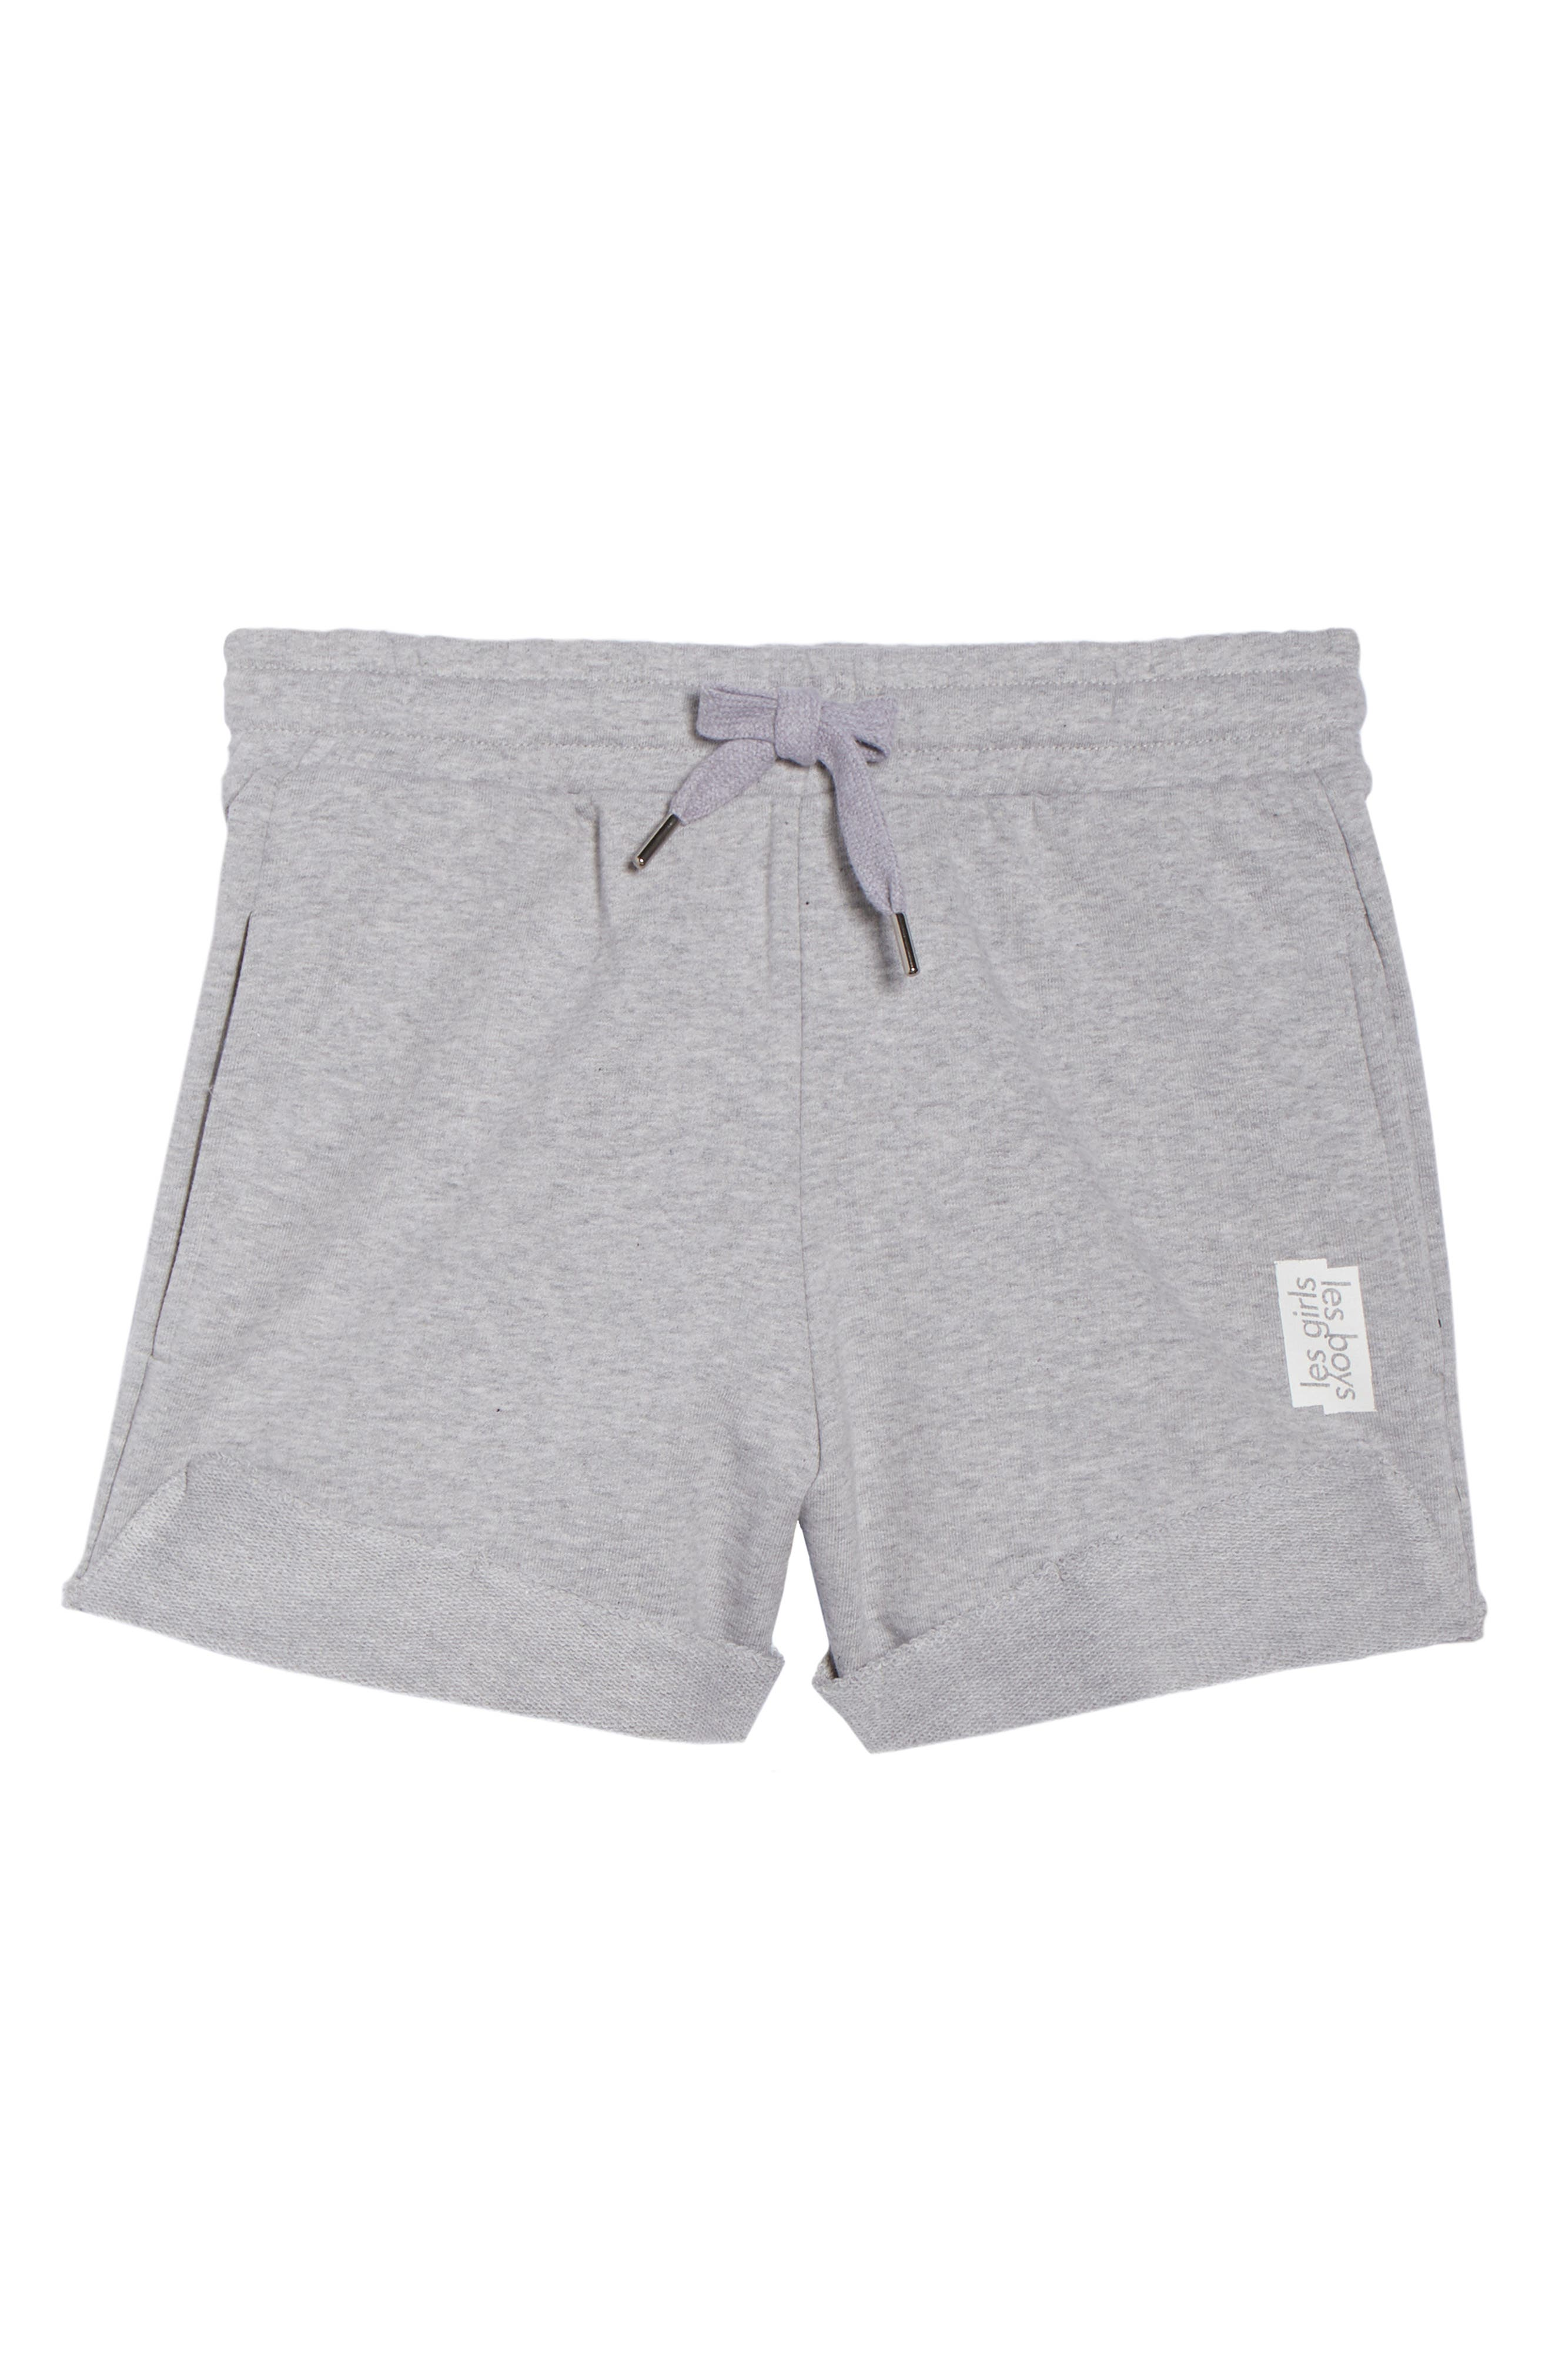 French Terry High Waist Shorts,                             Alternate thumbnail 4, color,                             Light Grey Marl